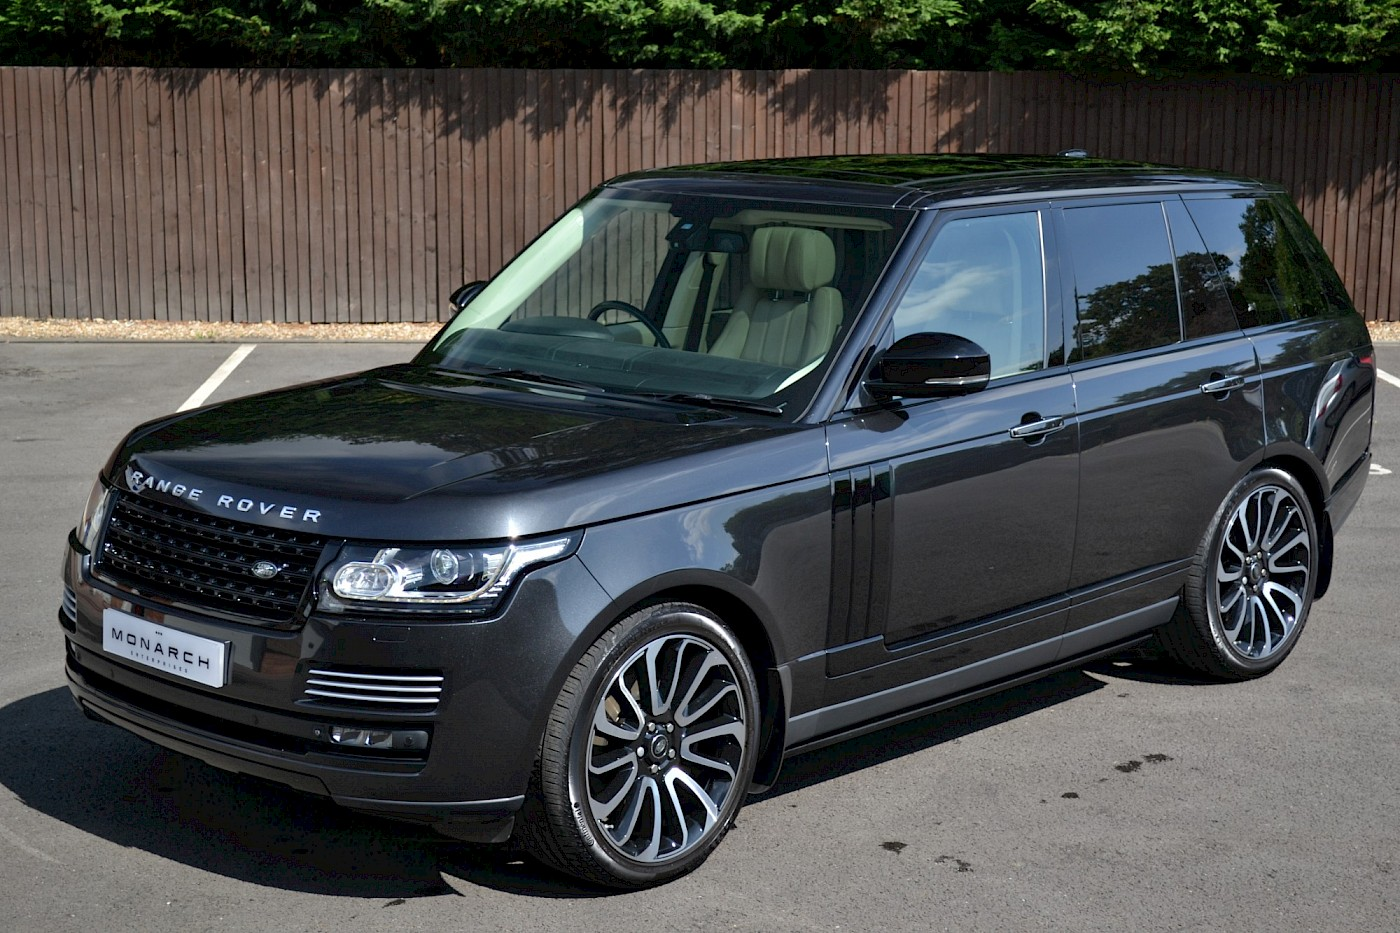 2014/64 Land Rover Range Rover 4.4 Autobiography 2